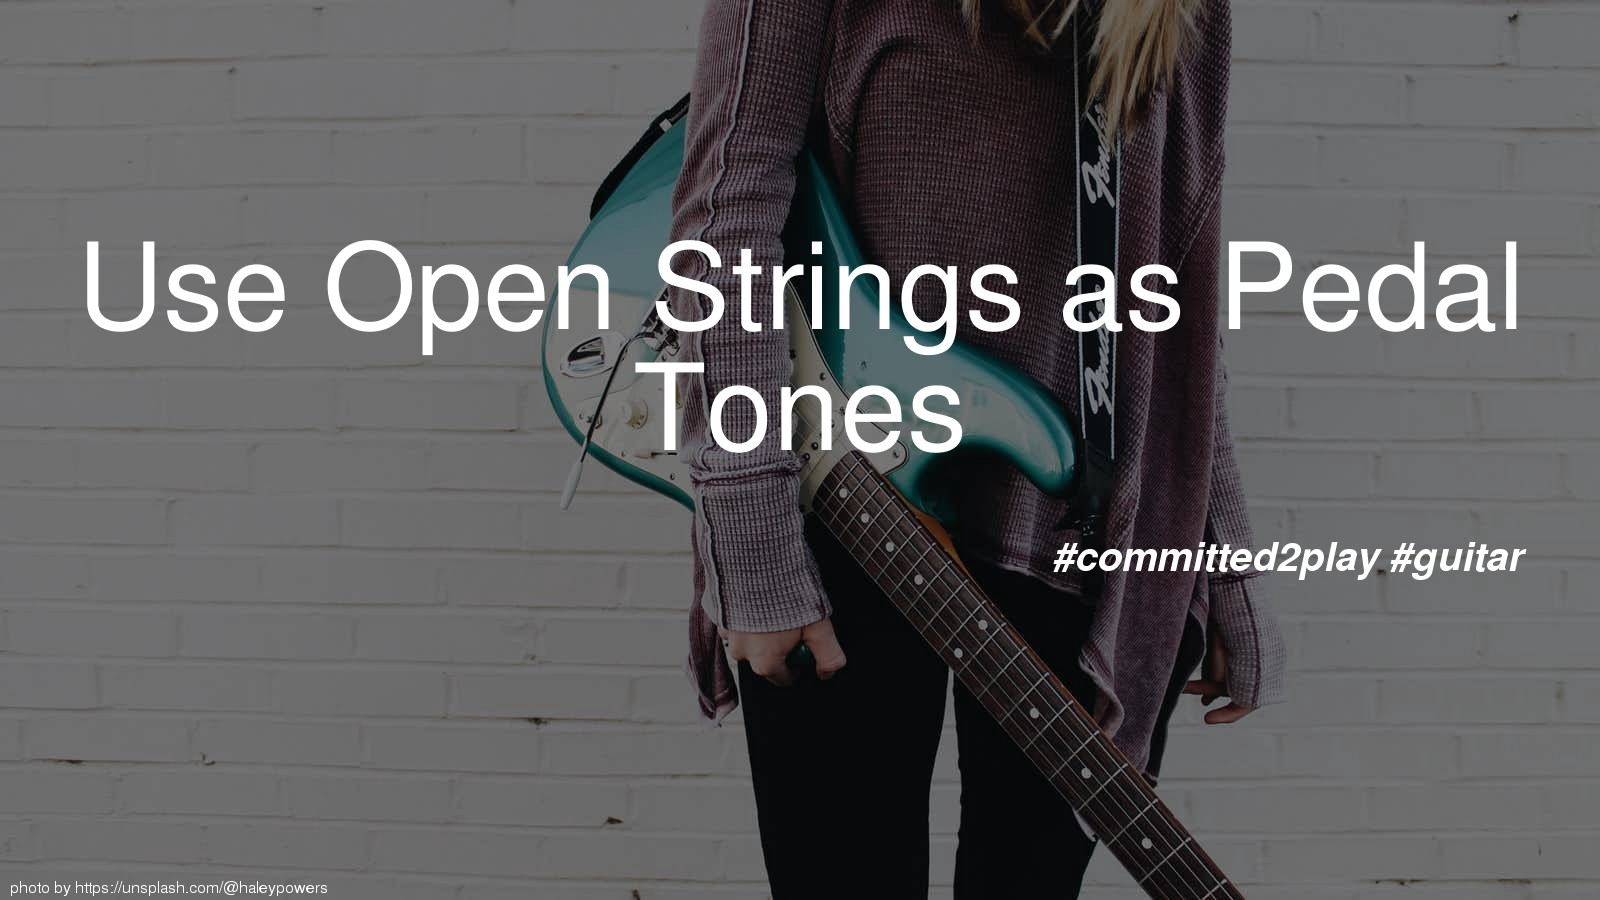 Use Open Strings as Pedal Tones